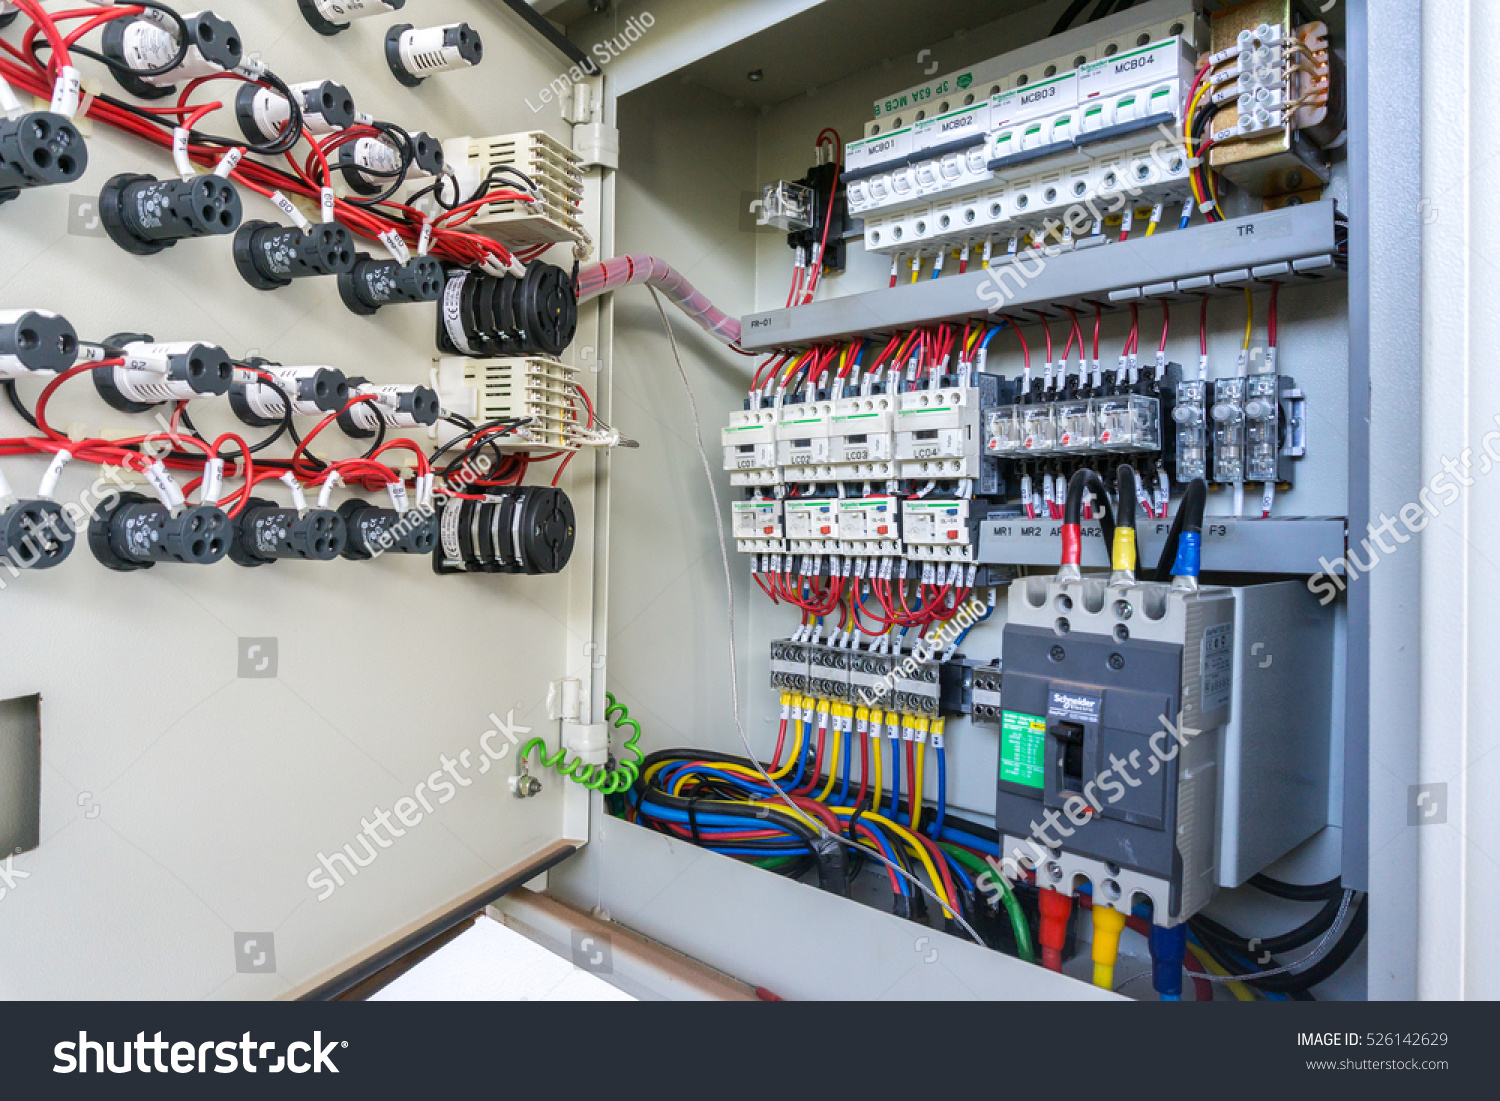 Kuala Lumpurmalaysia 29 Nov 2016 Circuit Stock Photo Edit Now Wiring Panel Board Breaker And Control